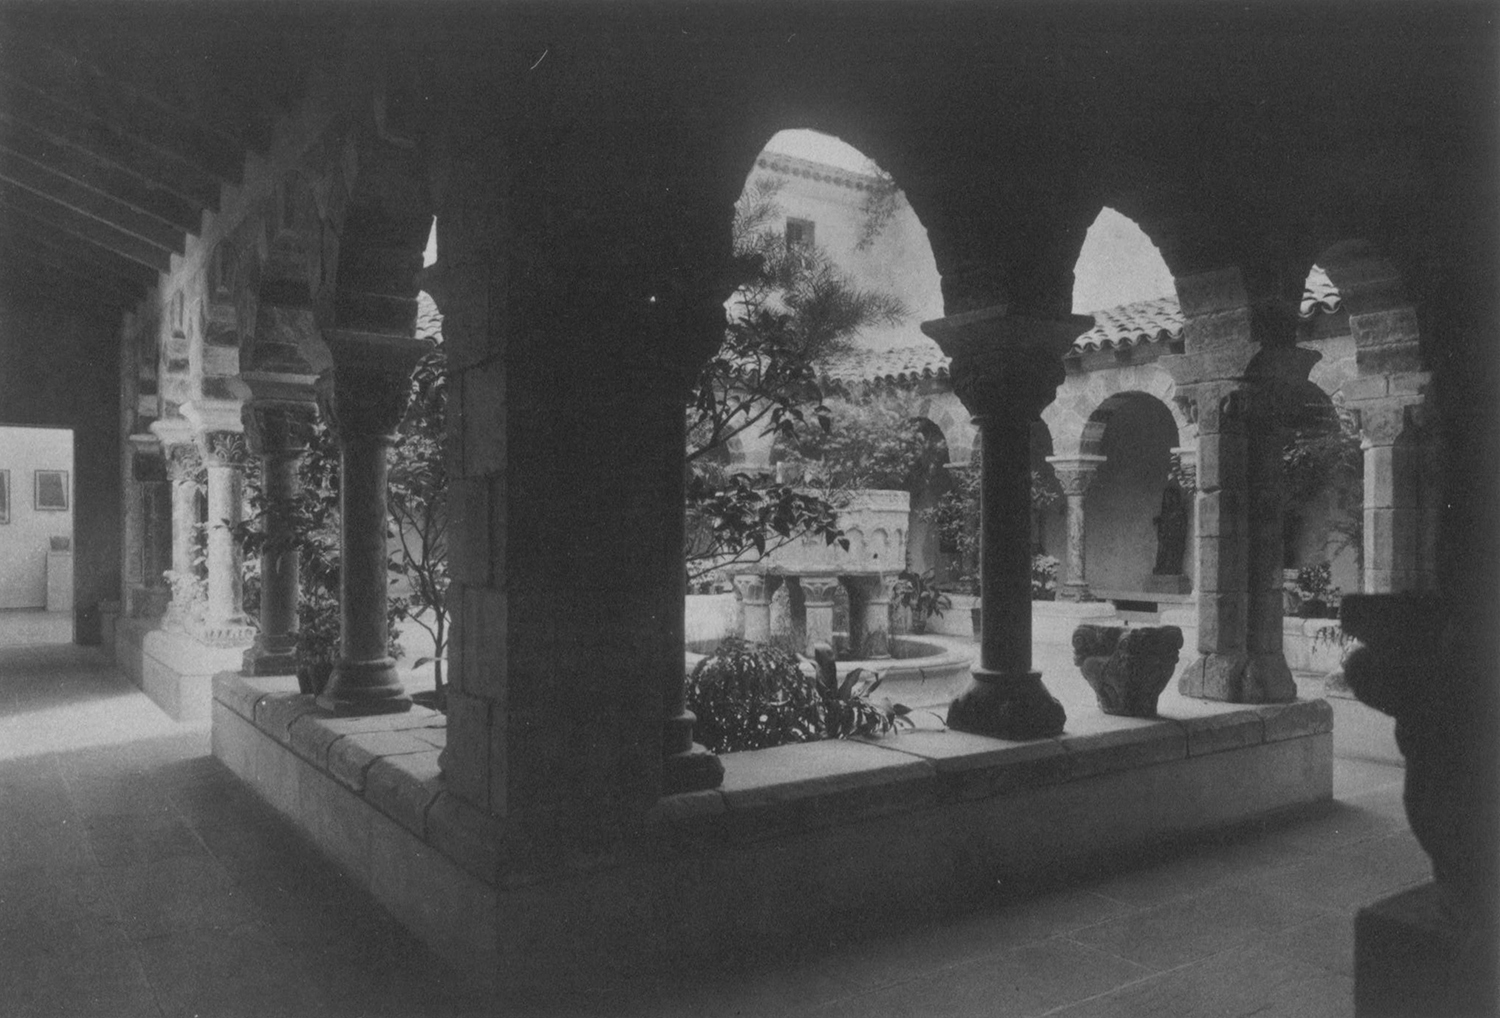 Figure 13: View of the Cloister from Saint Genis des Fontaines, March 1931, Philadelphia Museum of Art.